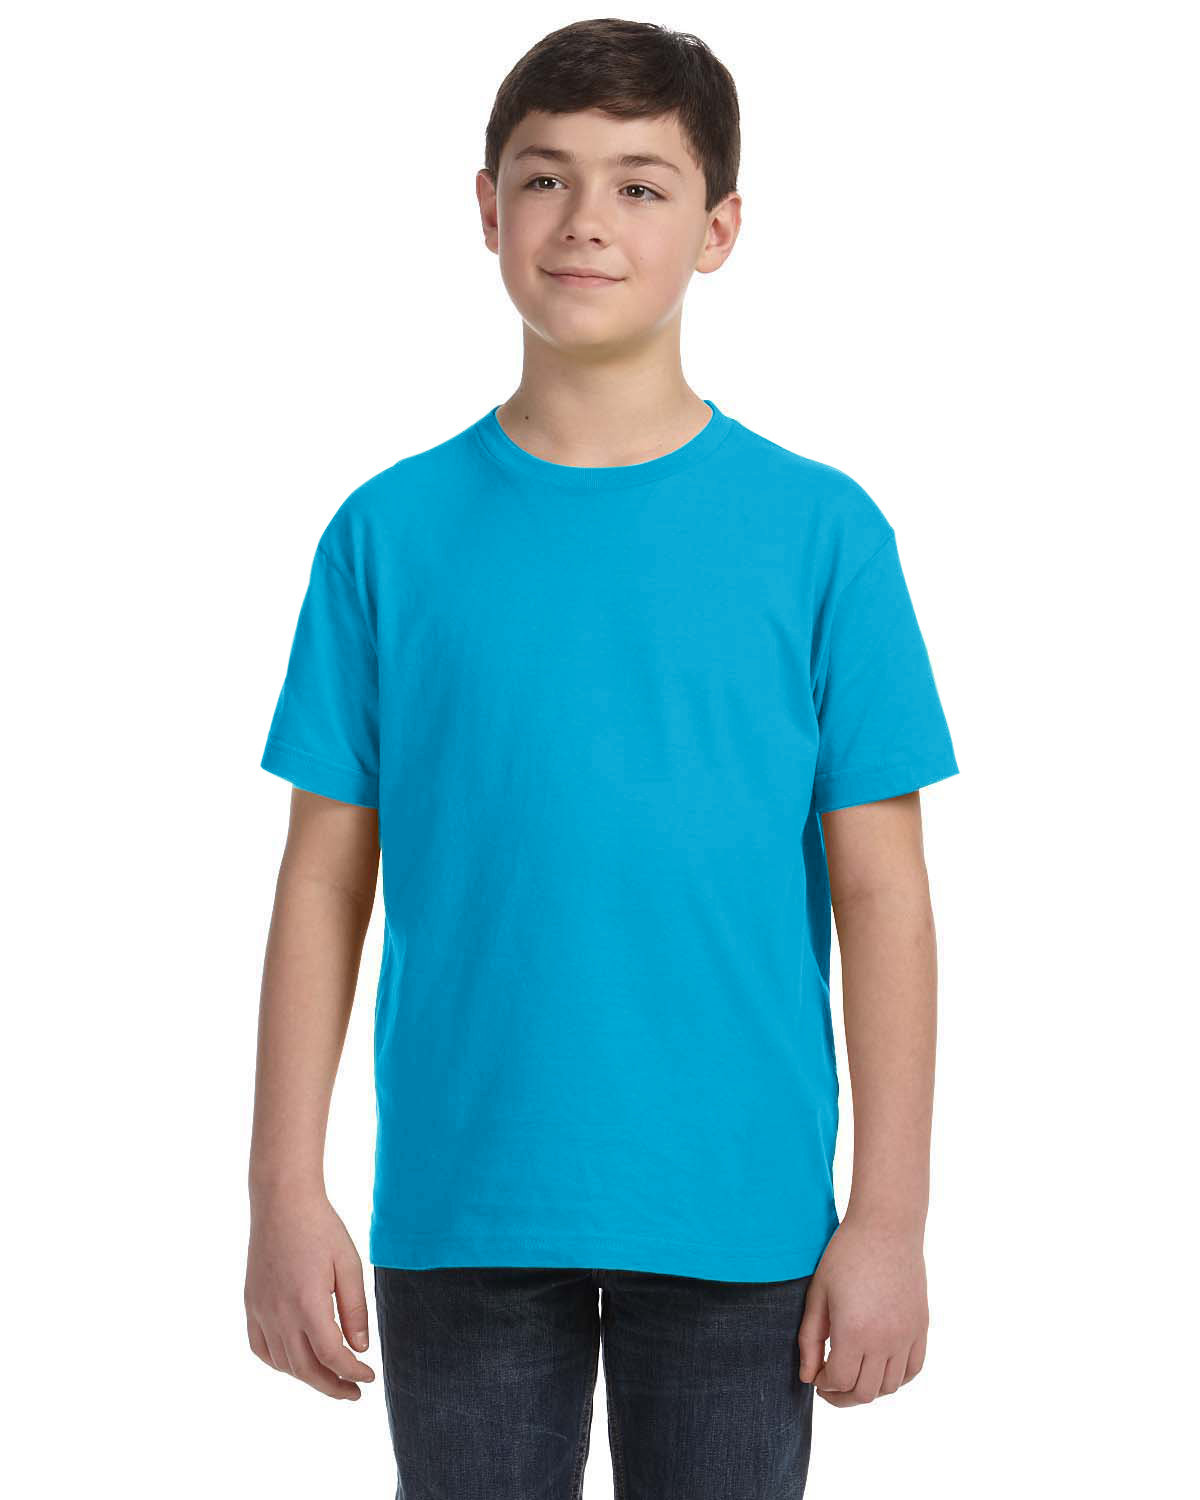 LAT Youth Fine Jersey T-Shirt TURQUOISE